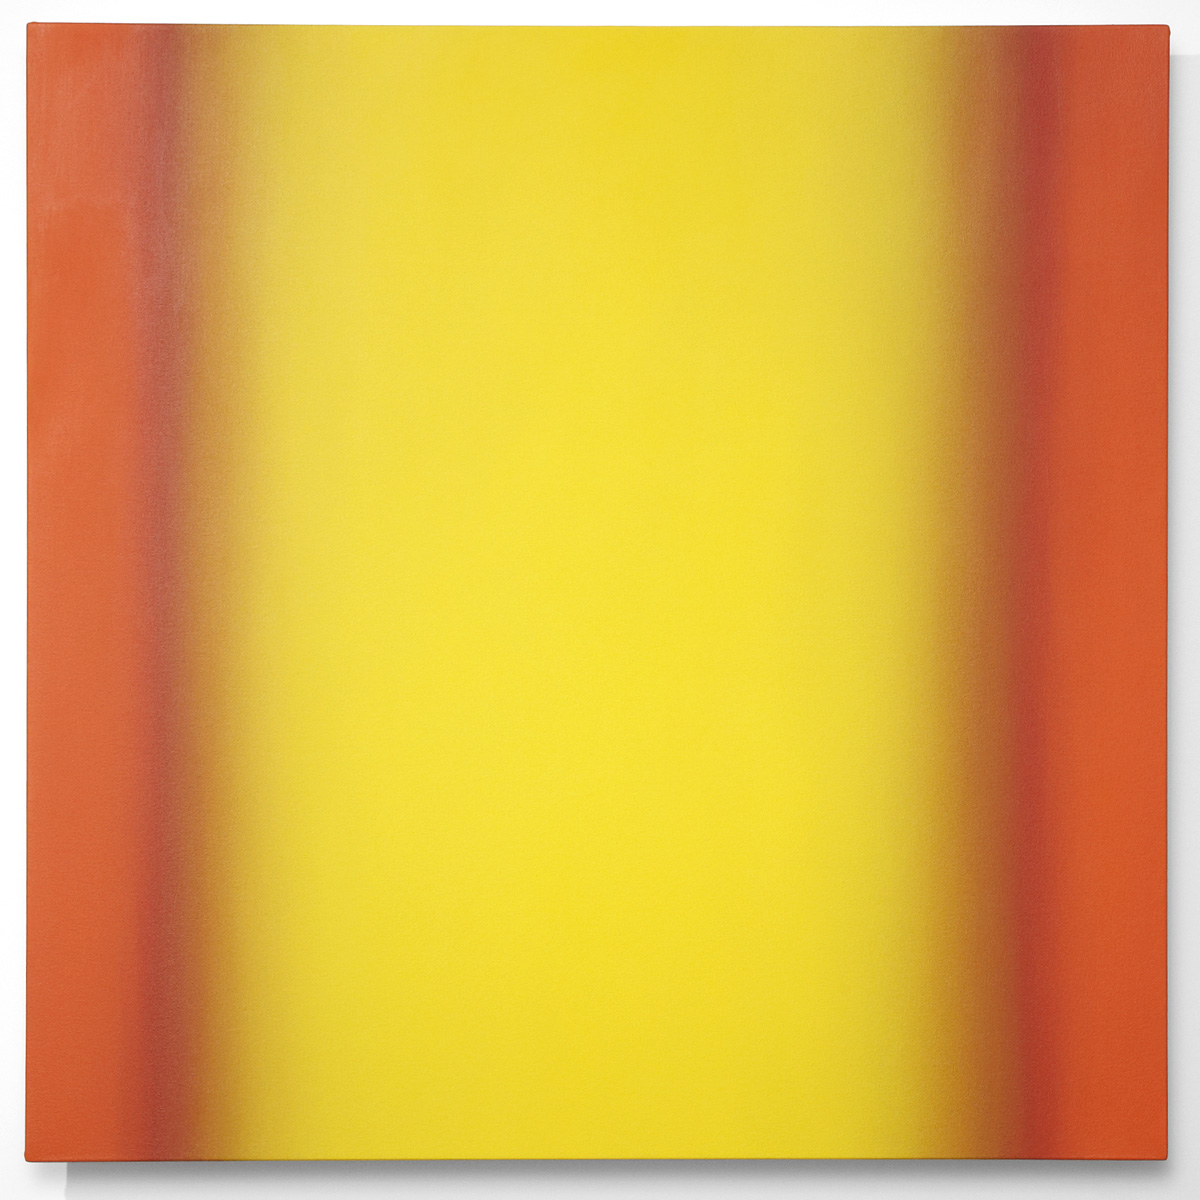 Blue Orange 9-S4848 (Yellow Orange), Interplay Series, 2013, oil on canvas on custom beveled stretcher, 48 x 48 in. (122 x 122 cm.)